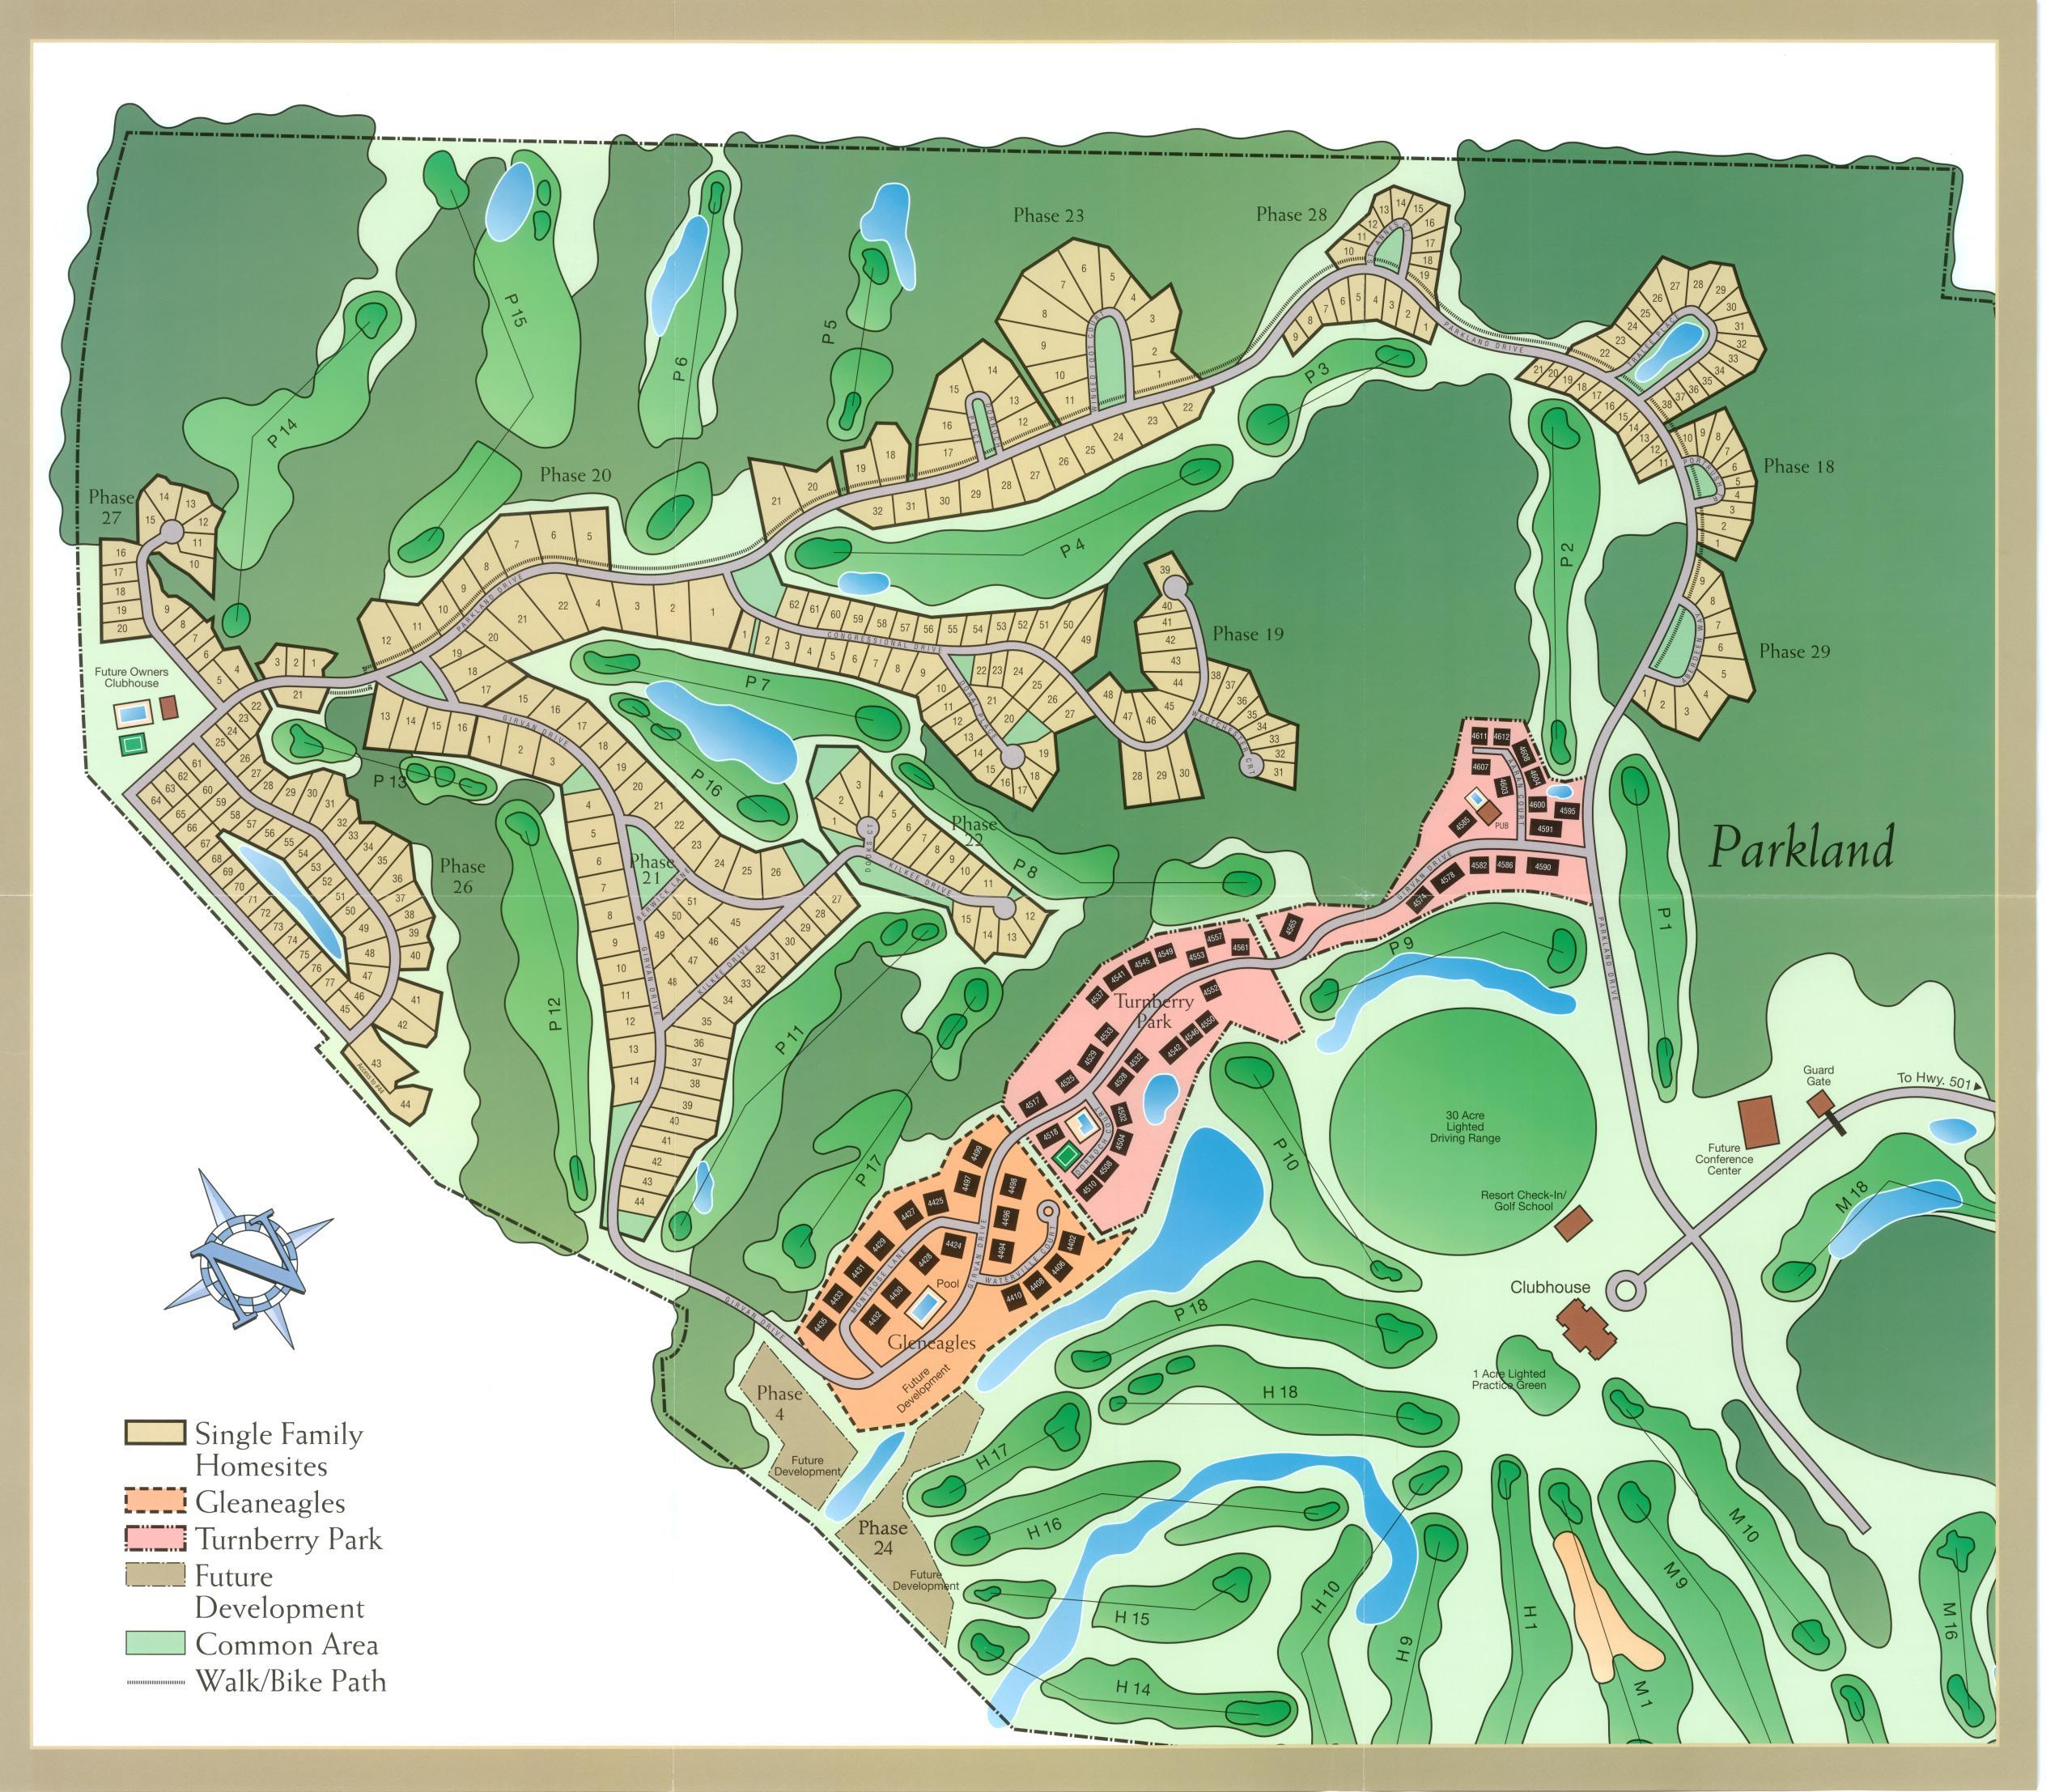 1300 acre site map of the Legends Resort